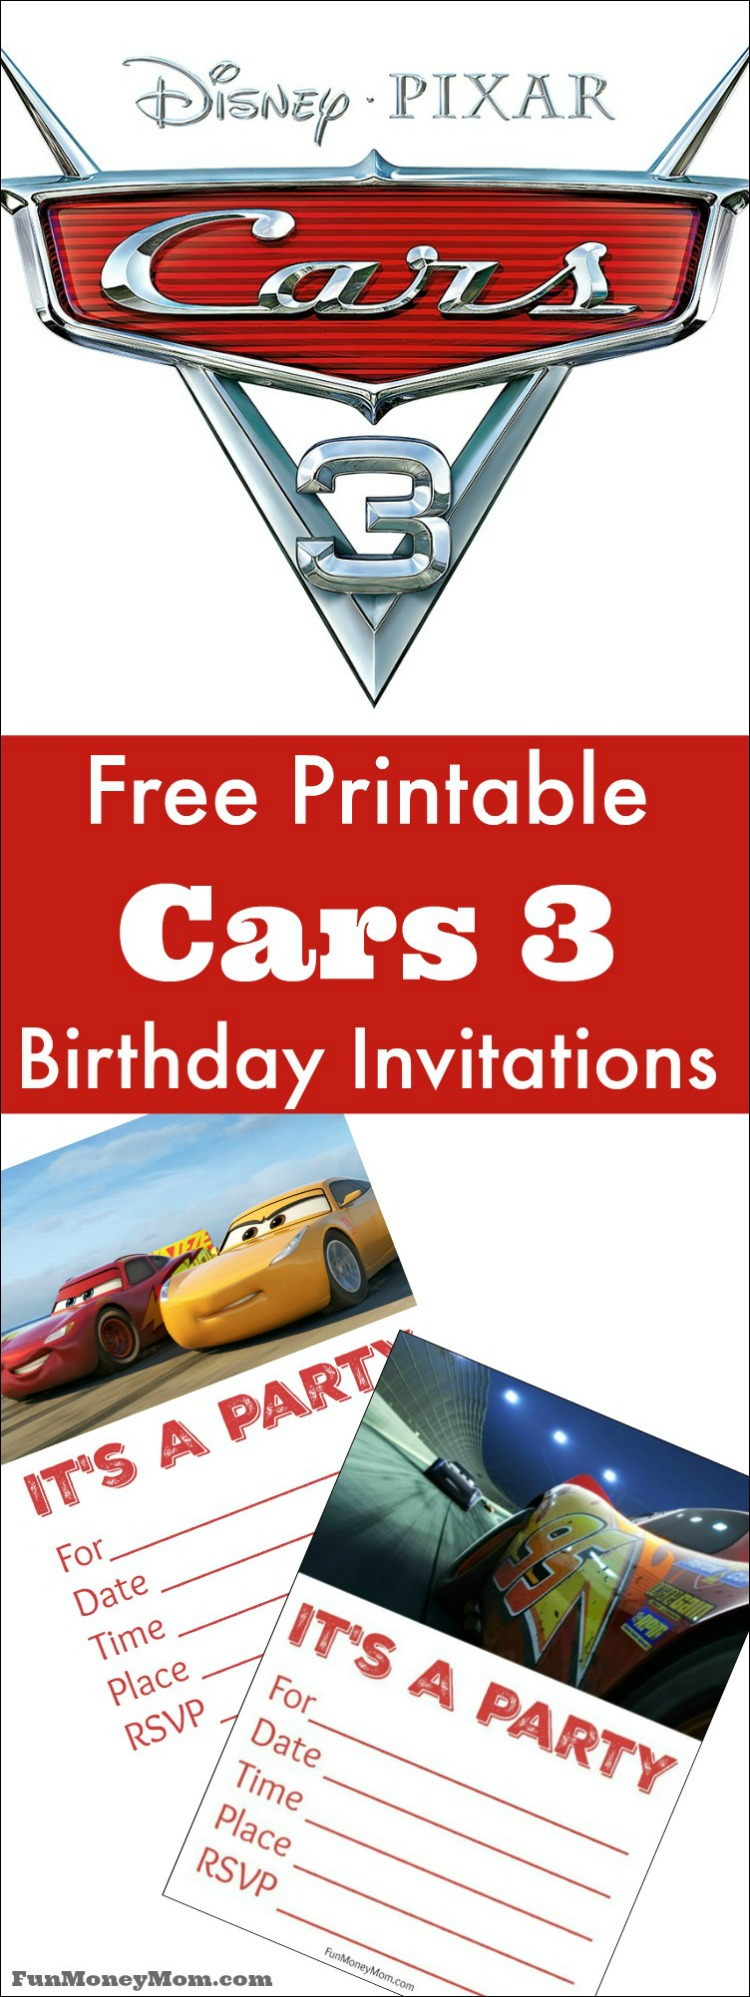 Are your kids begging for a Cars 3 birthday party? Why not start the ball rolling with these free printable Cars 3 birthday invitations.